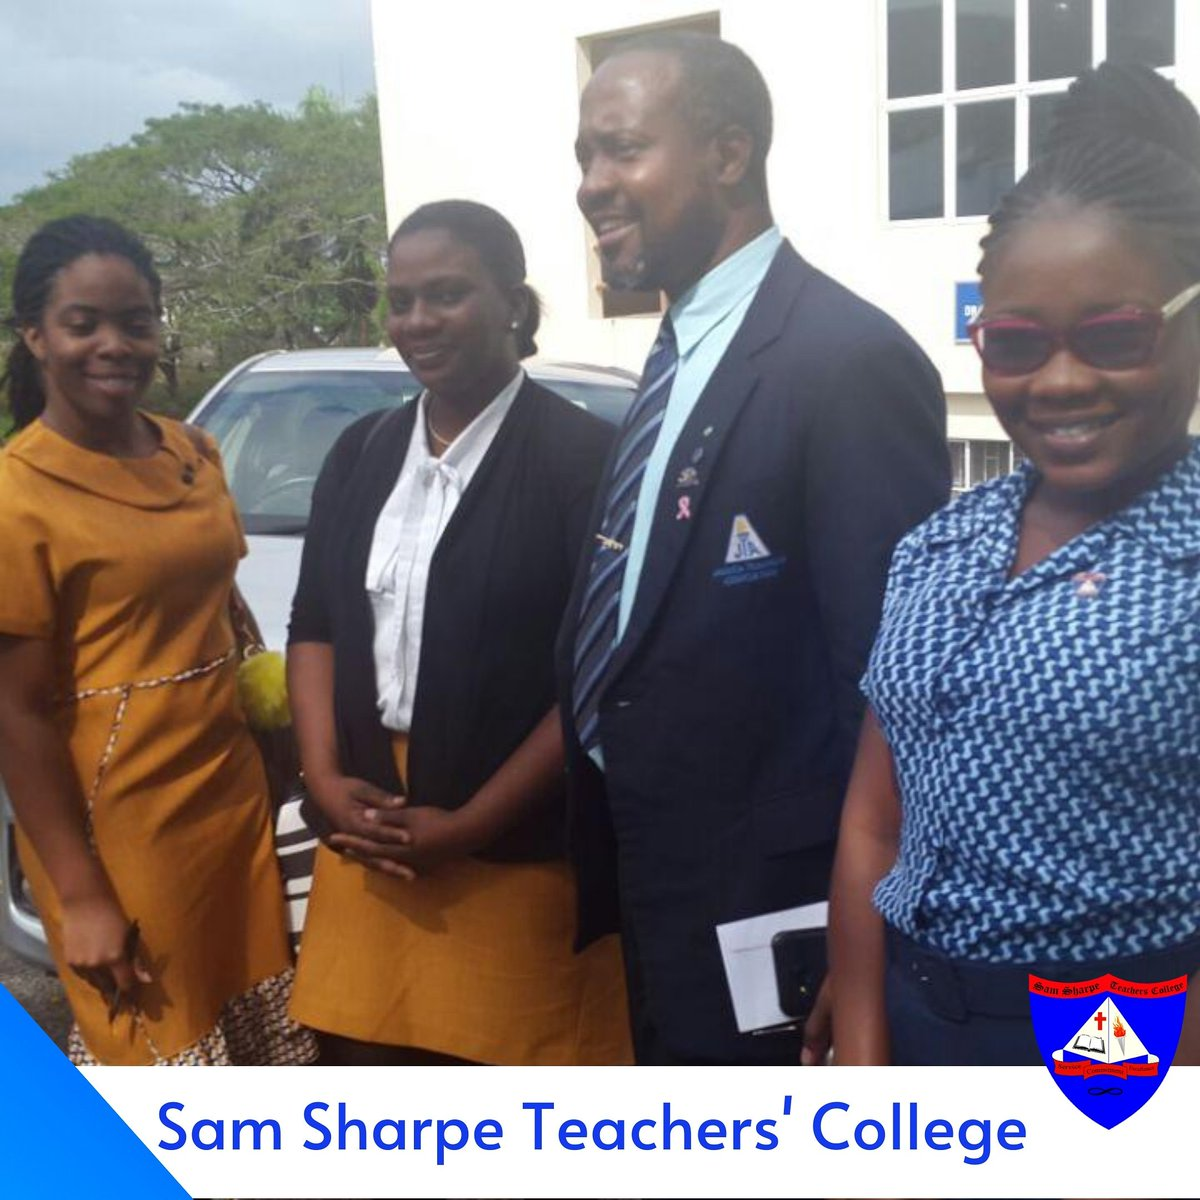 We are the leading teacher training institution in western Jamaica  #montegobay #jamaica #education #life #future #teacher #college #service #commitment #excellence